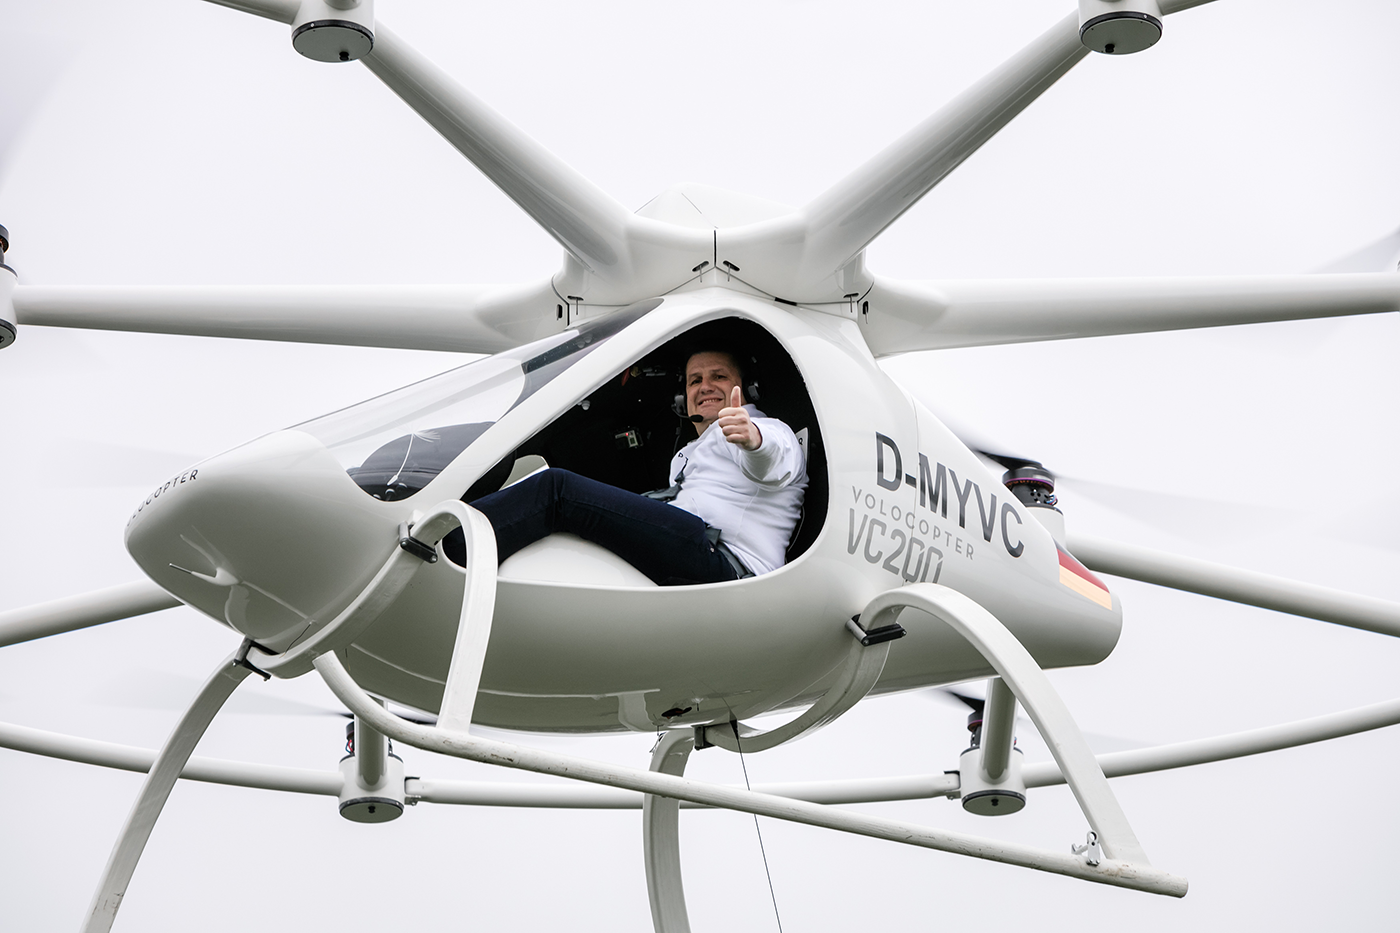 volocopter-manned-test-flight